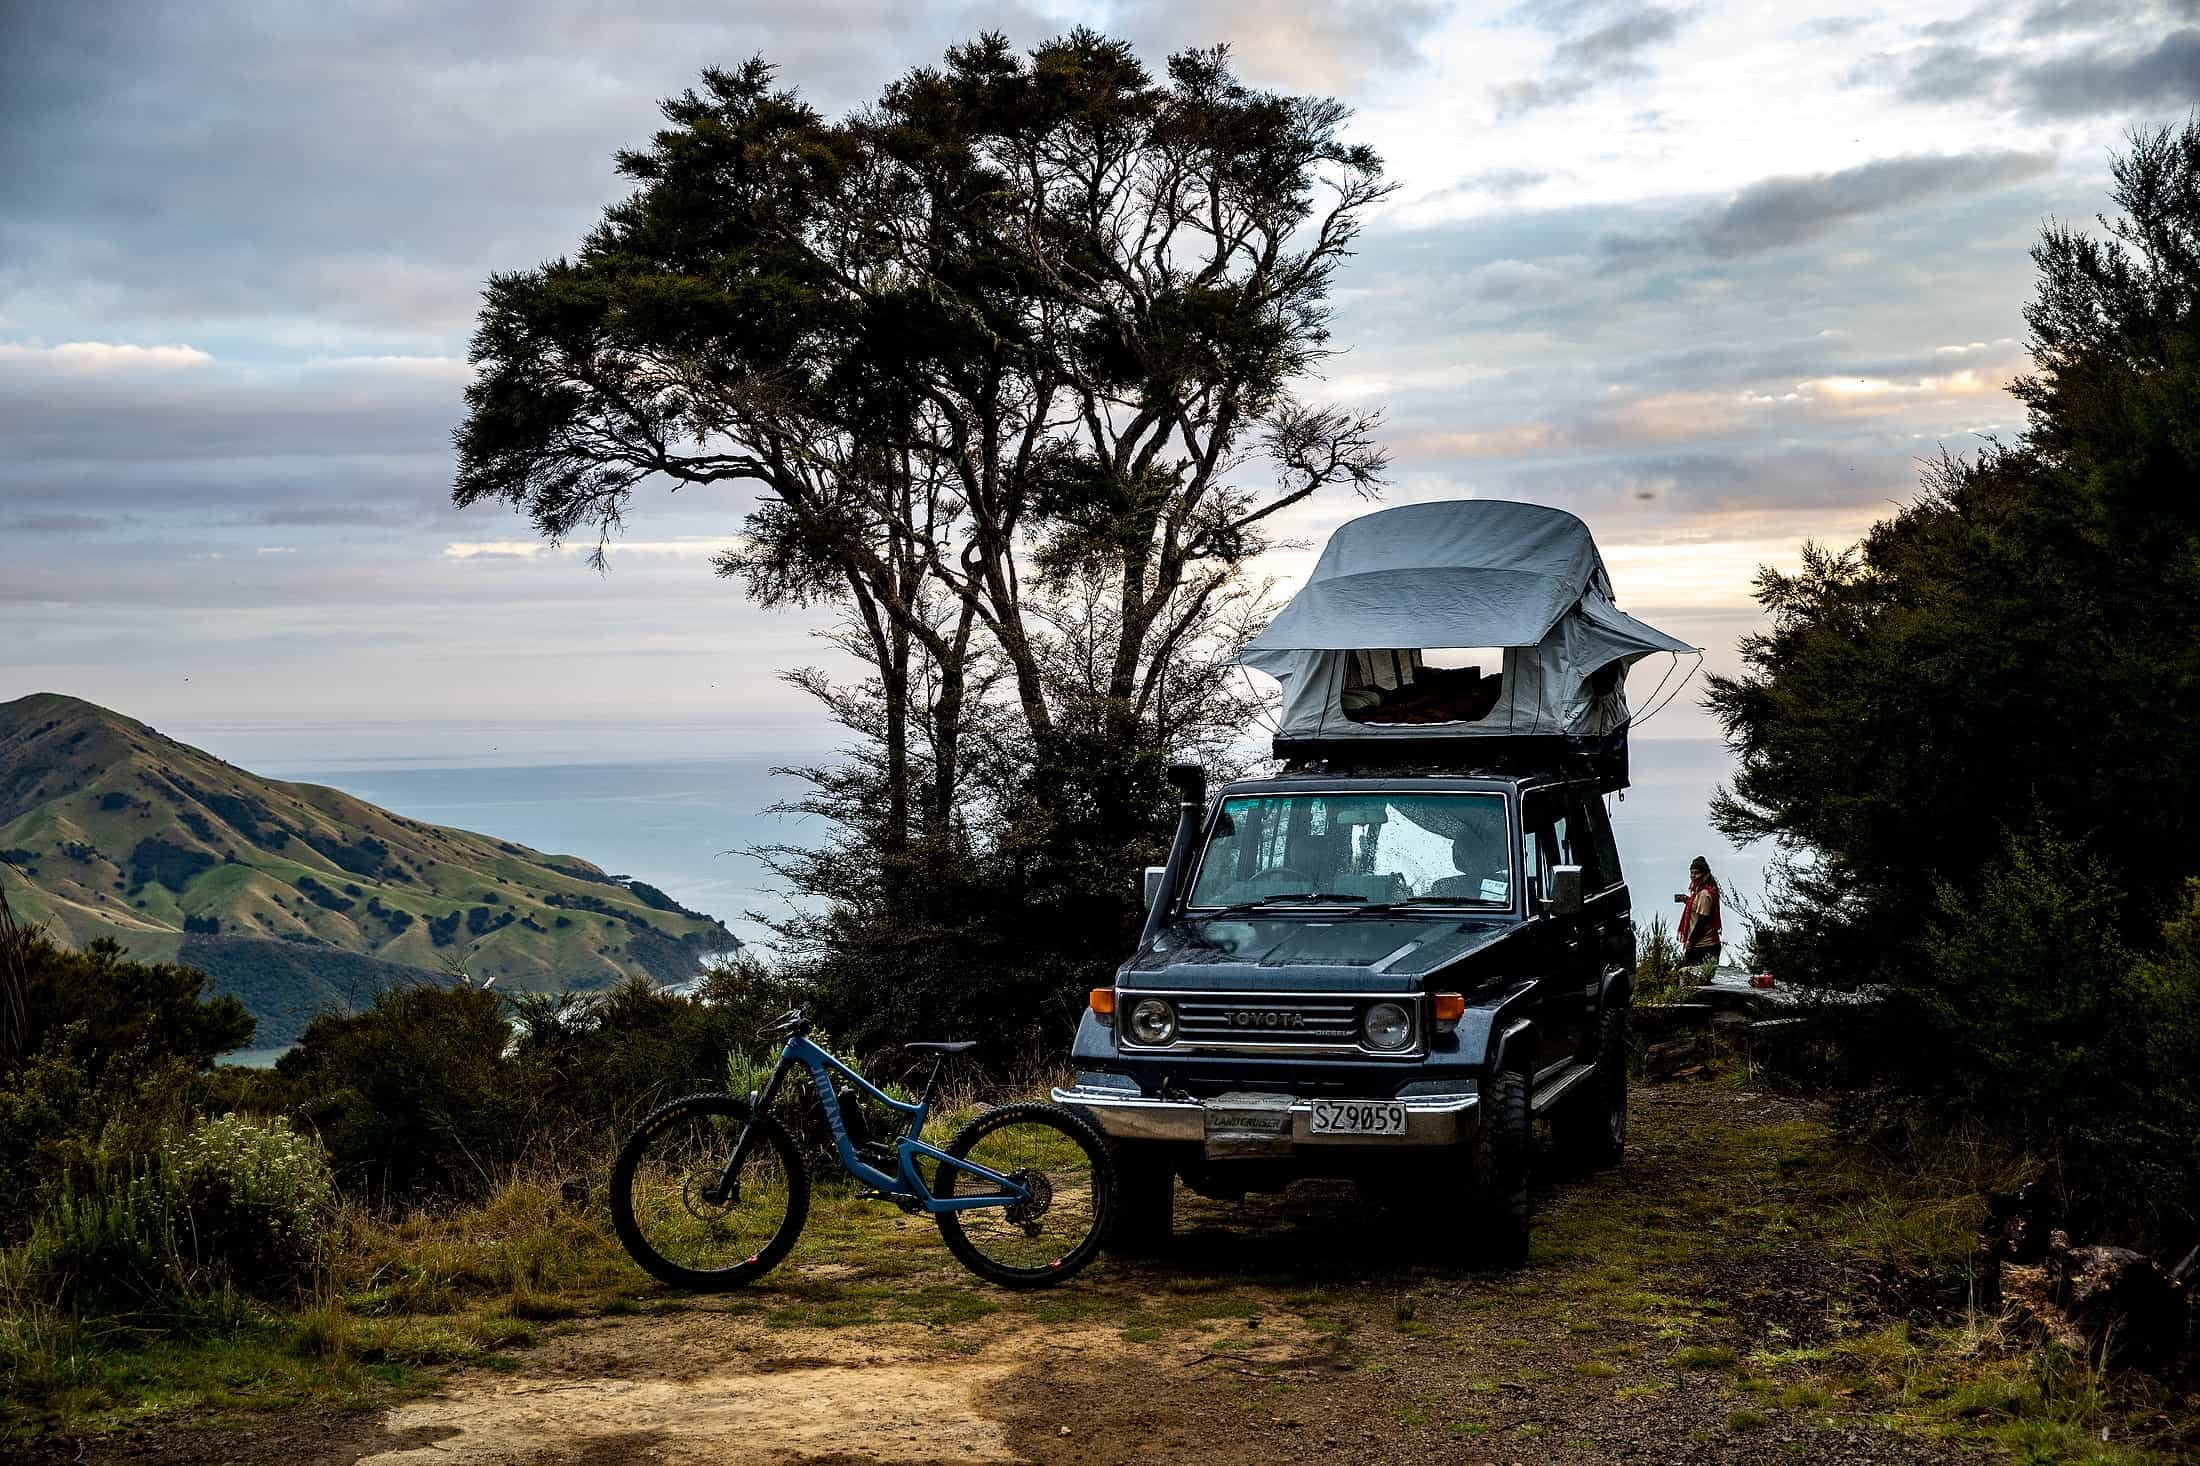 Anka Martin's 2022 Roubion next to her land cruiser with an open rooftop tent